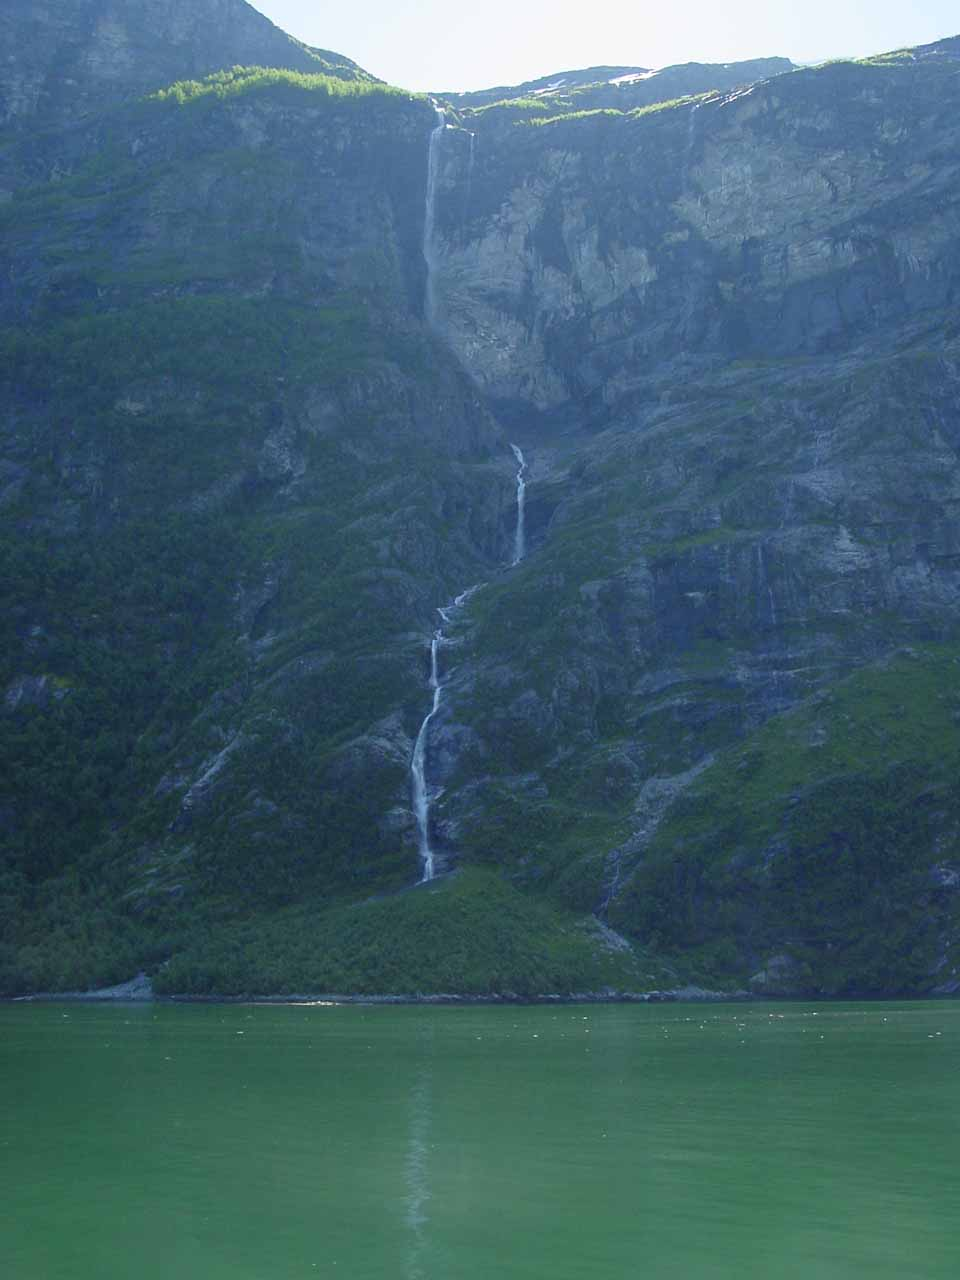 Some other thin waterfall seen on our return leg of the Geirangerfjorden cruise